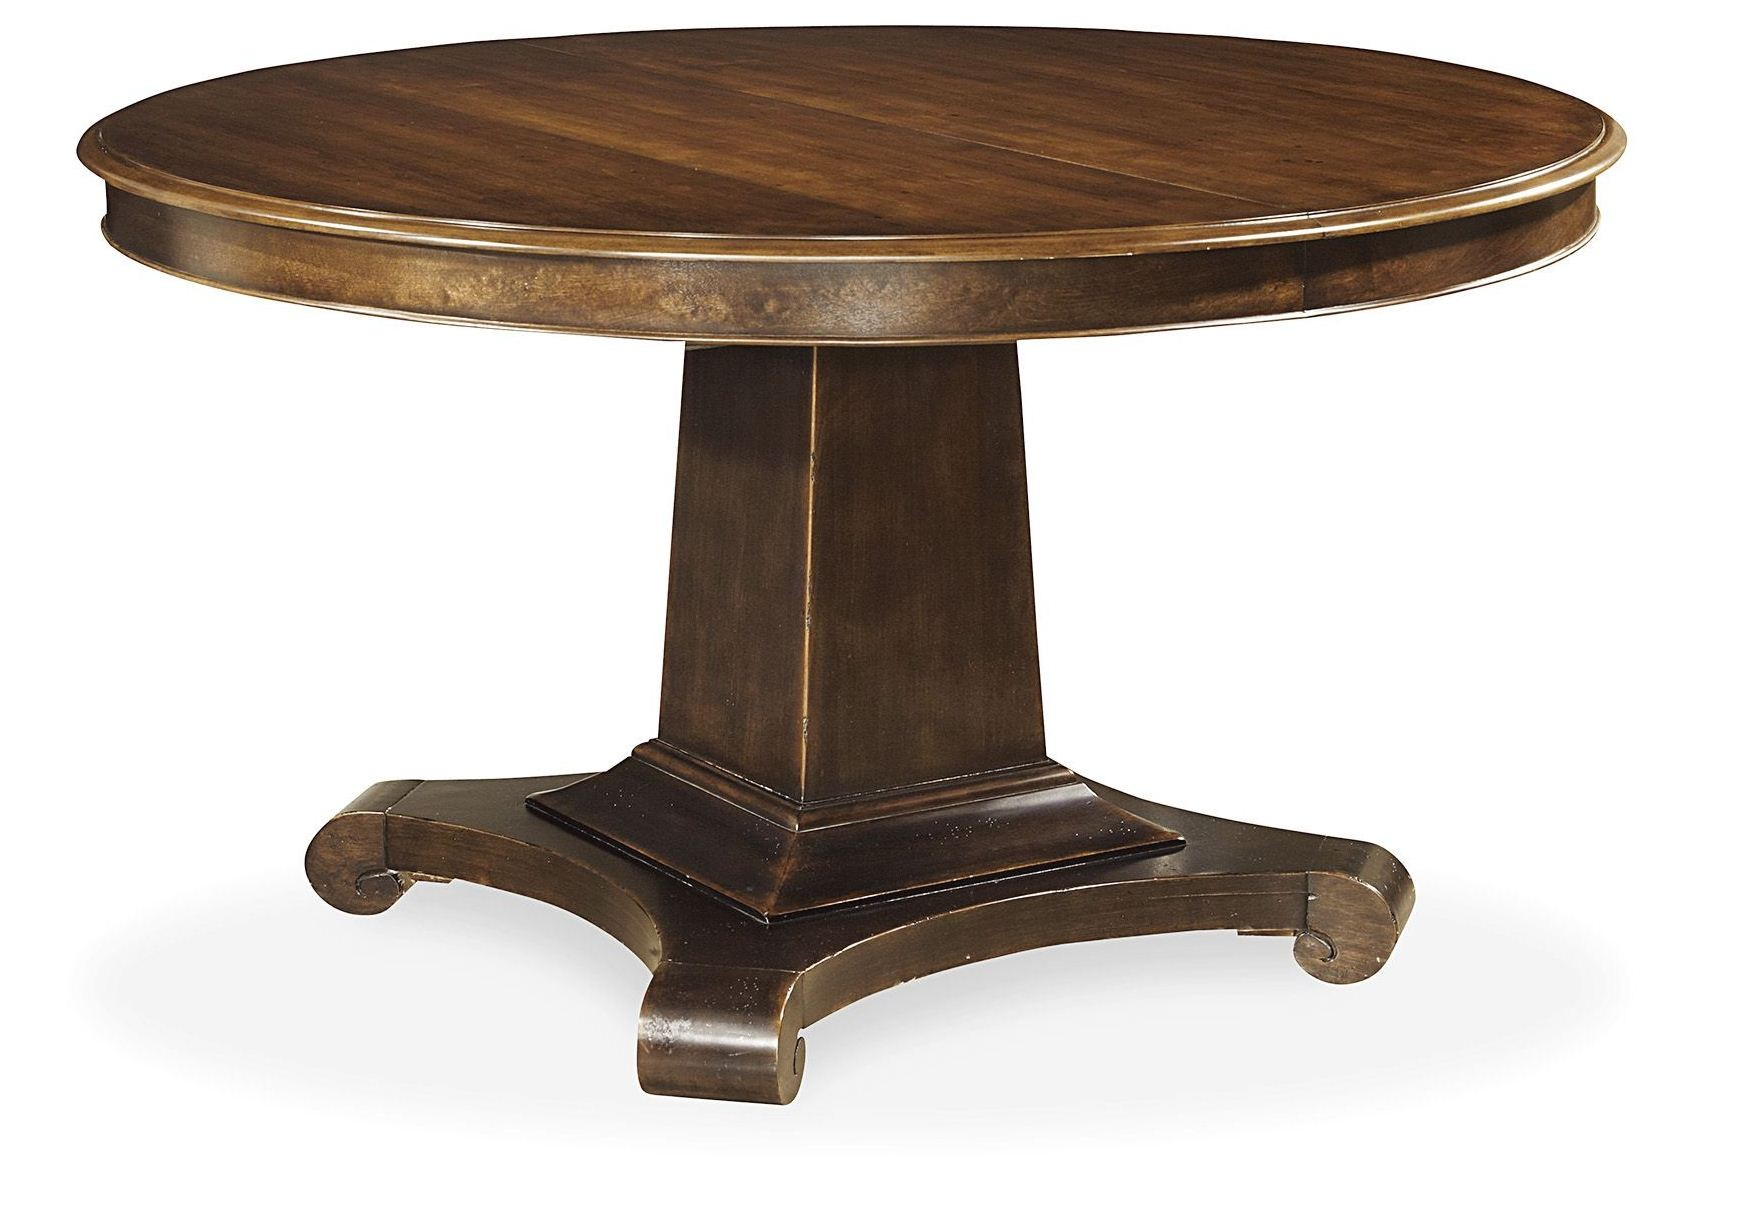 Cordevalle Round Pedestal Extendable Dining Room Set  : 313657s1 from colemanfurniture.com size 1741 x 1210 jpeg 215kB